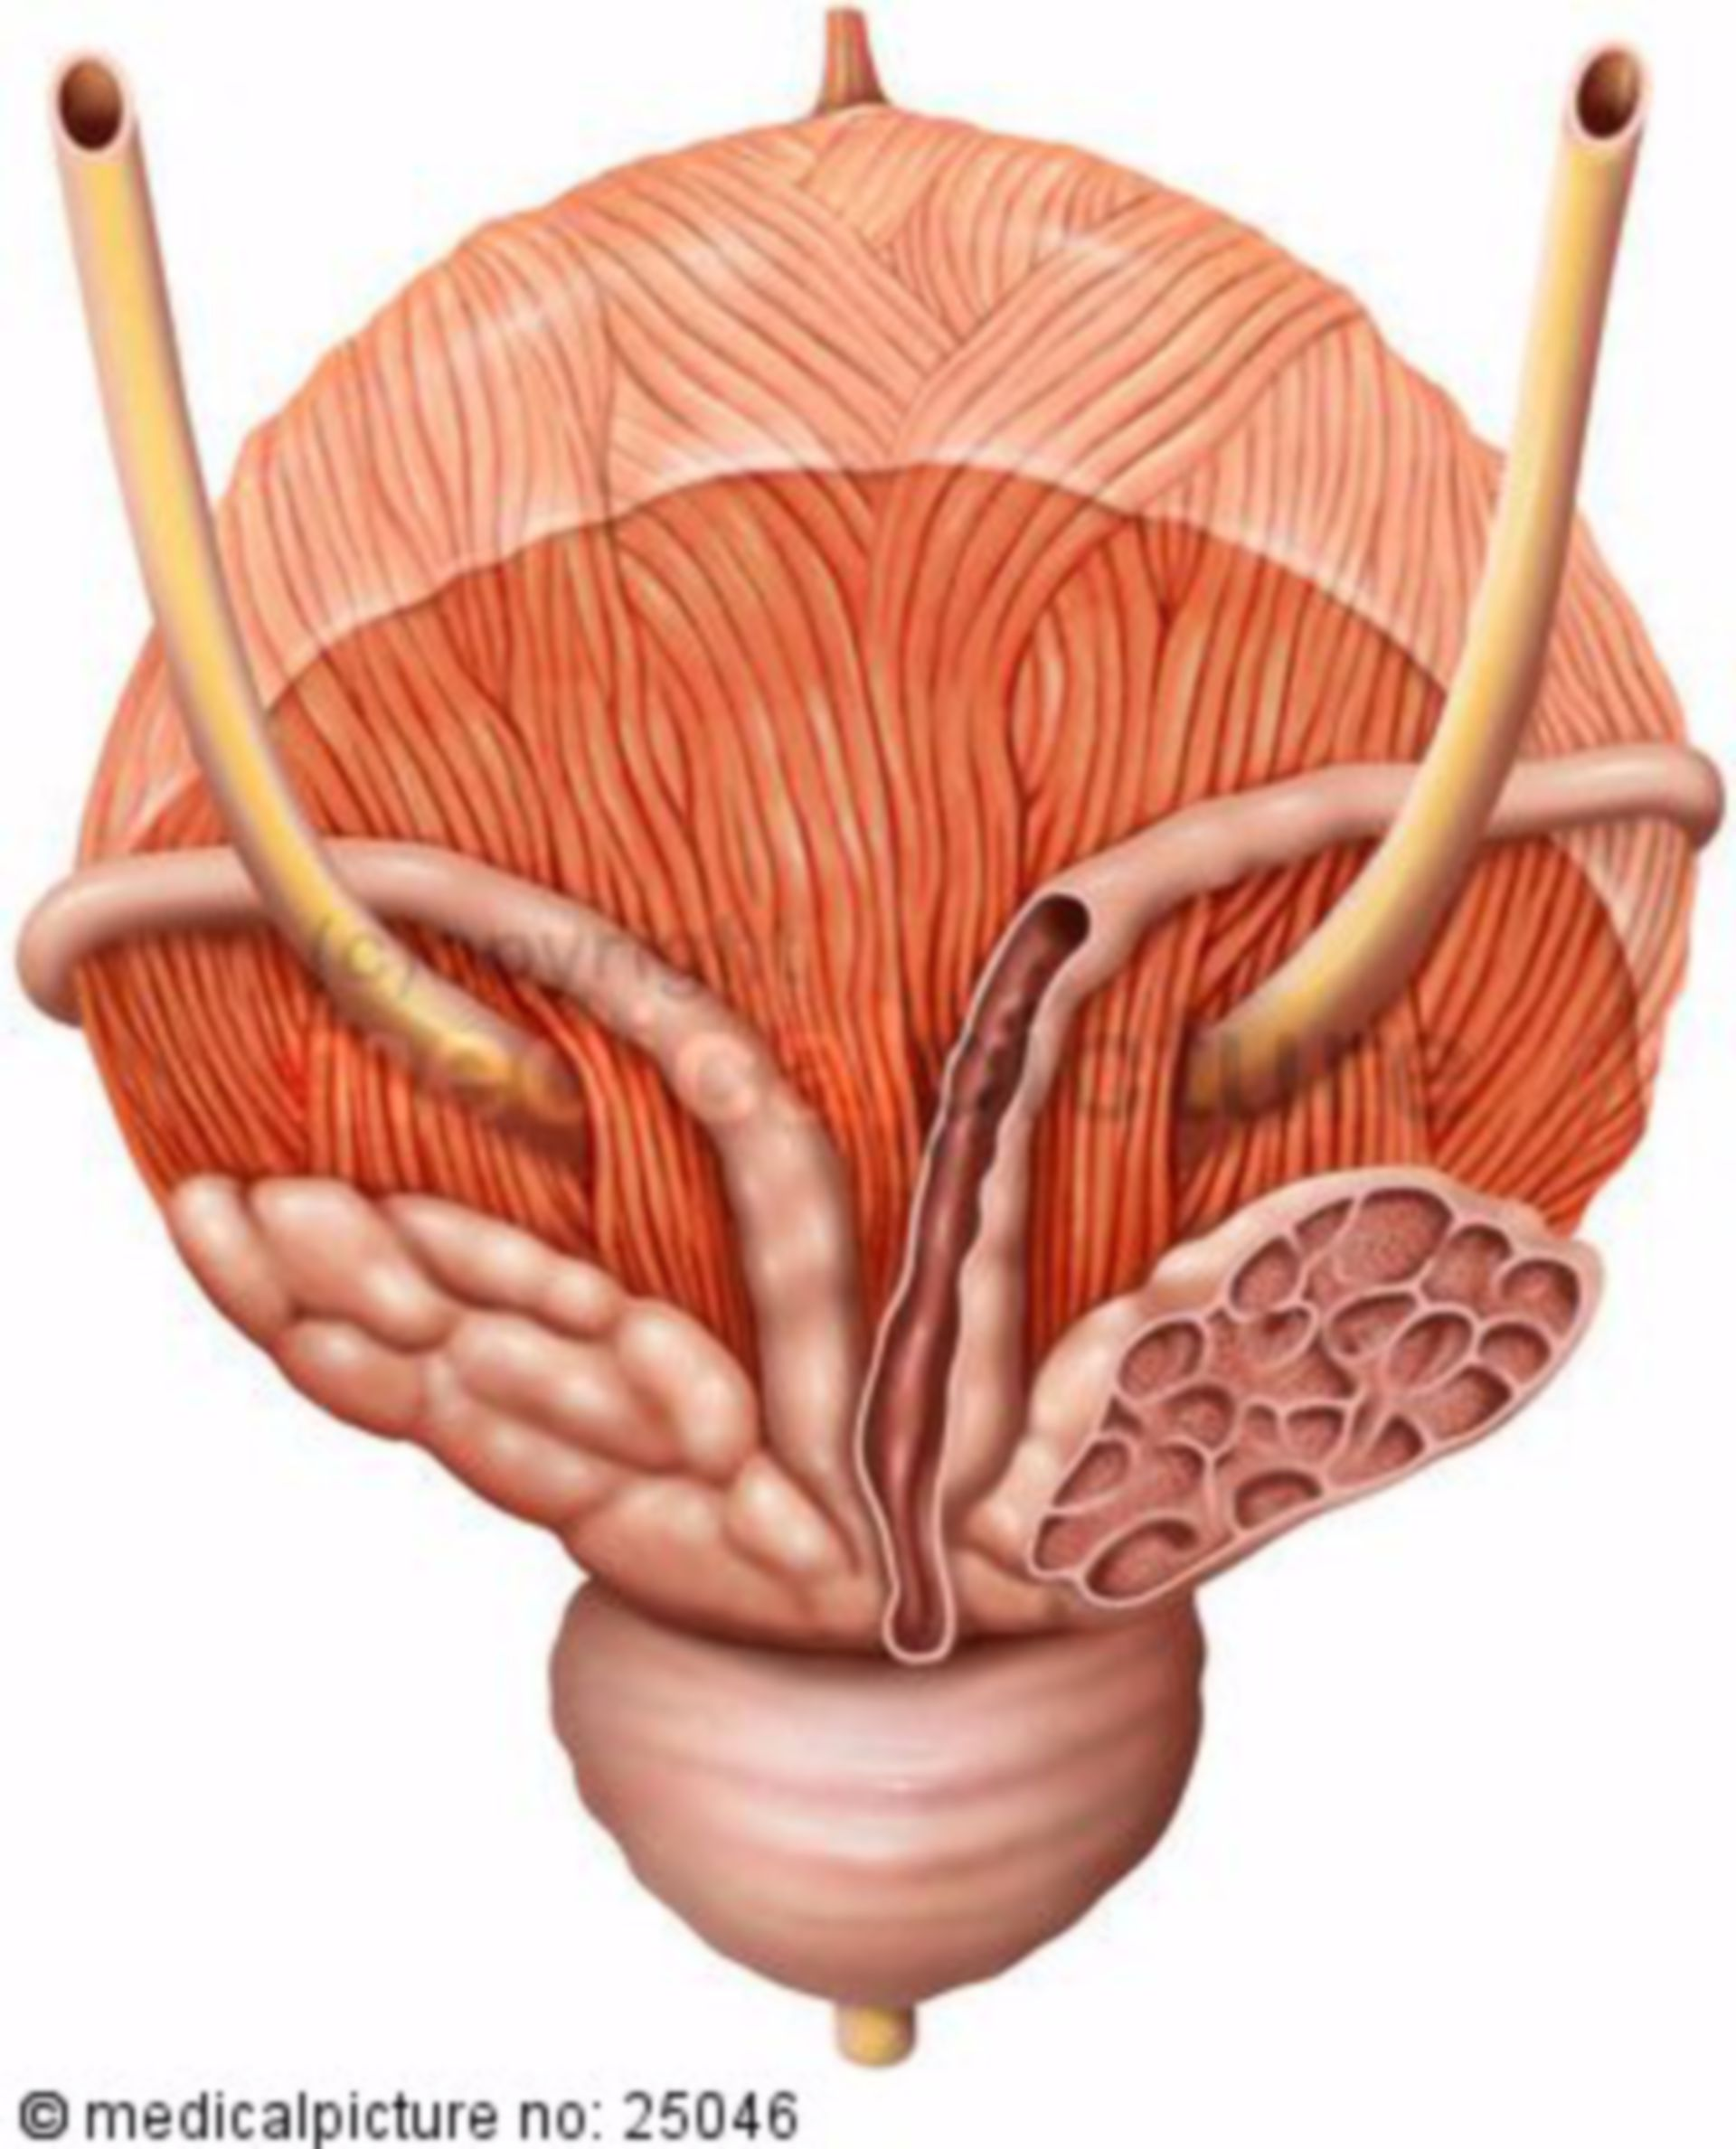 Posterior view of the male urinary bladder with section of inner genitals after removal of the rectum